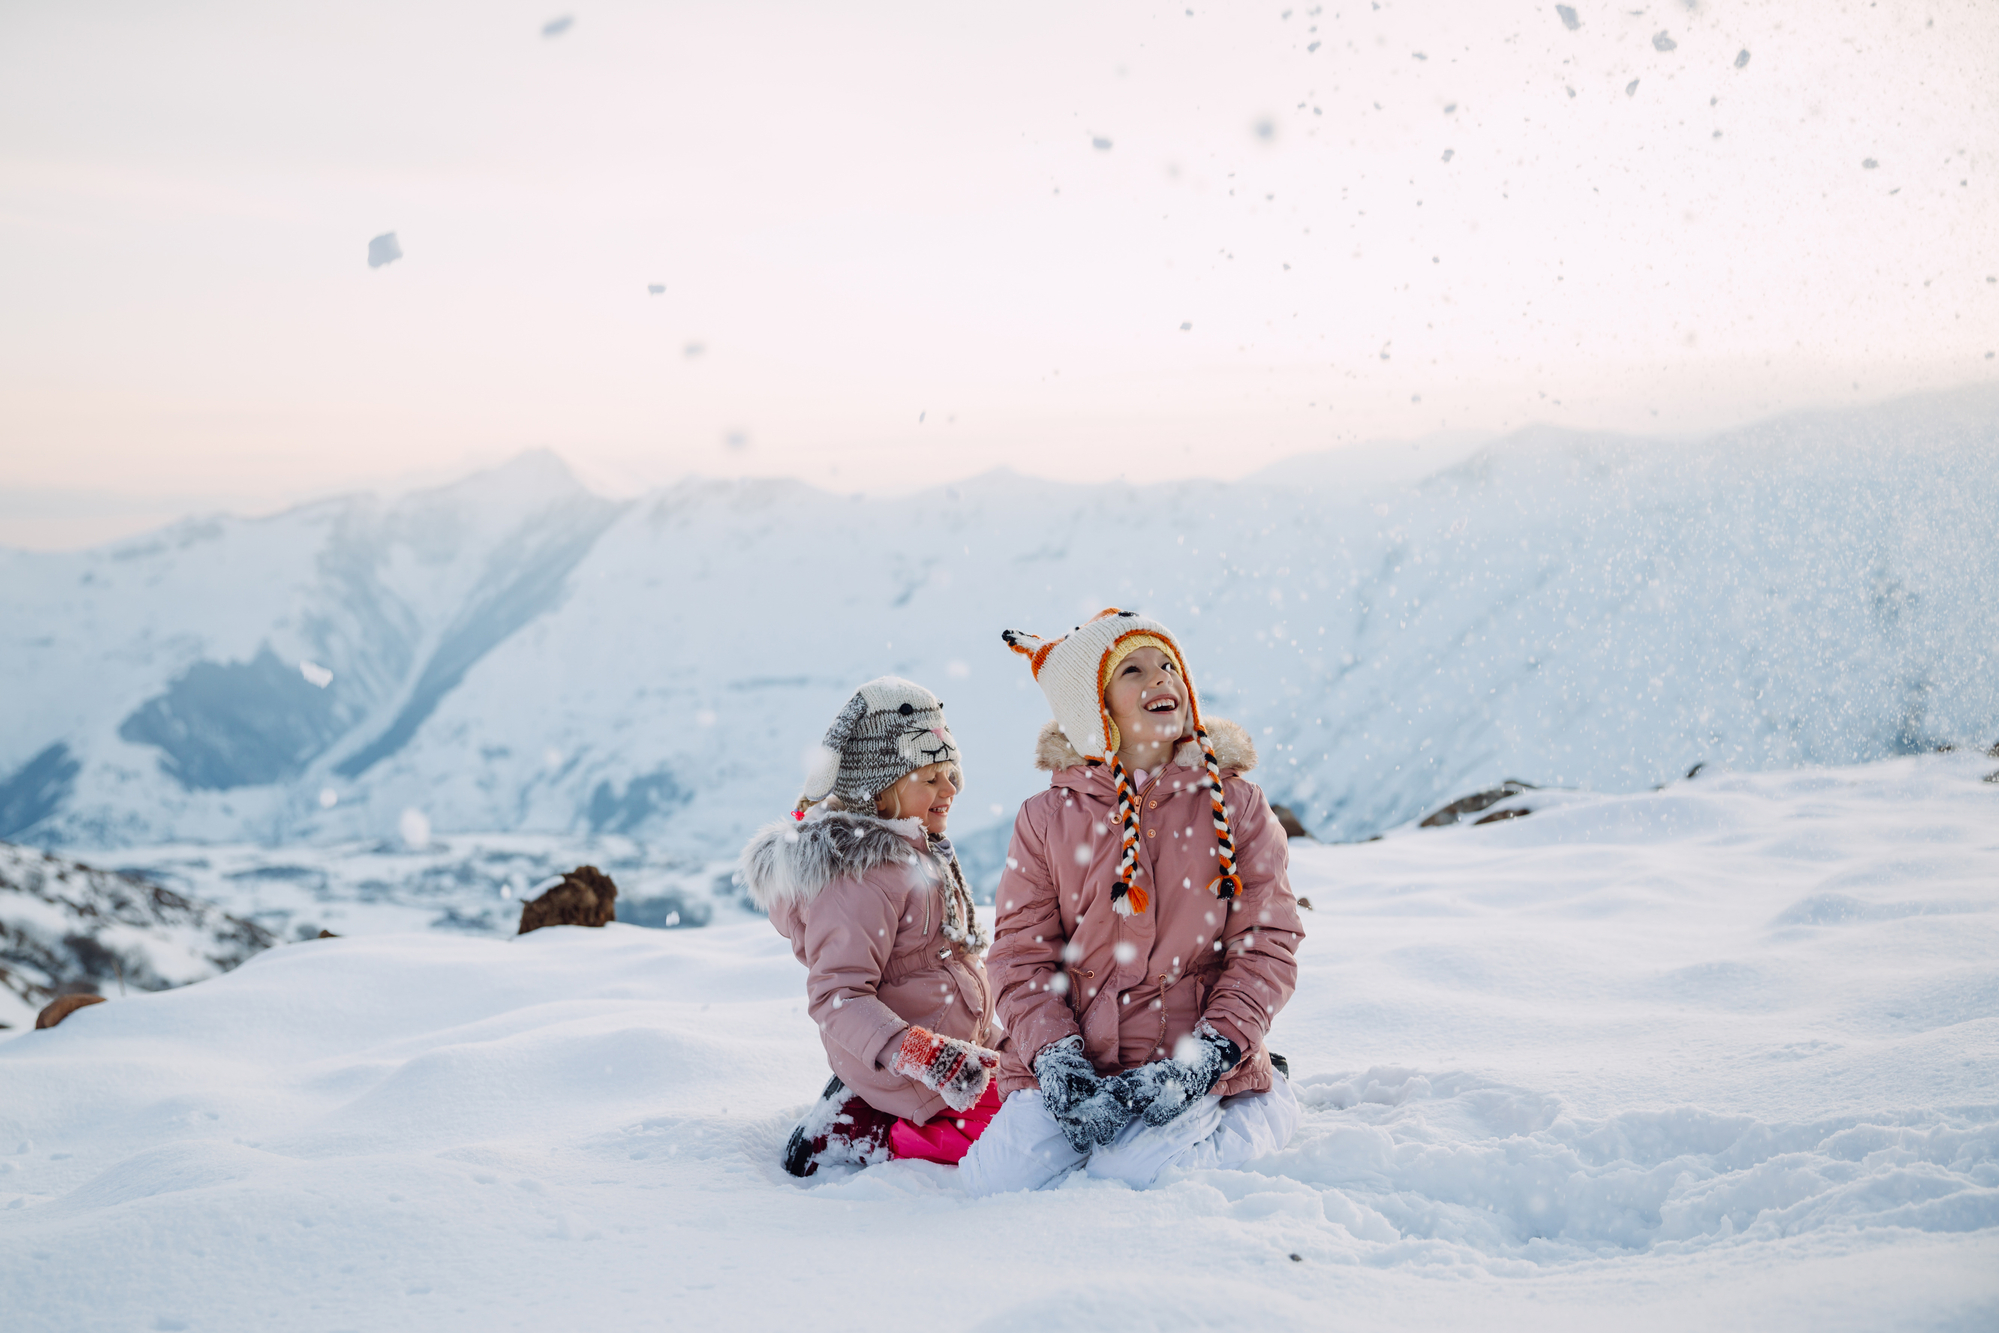 Two girls sitting in the snow and loooking at snowflakes falling